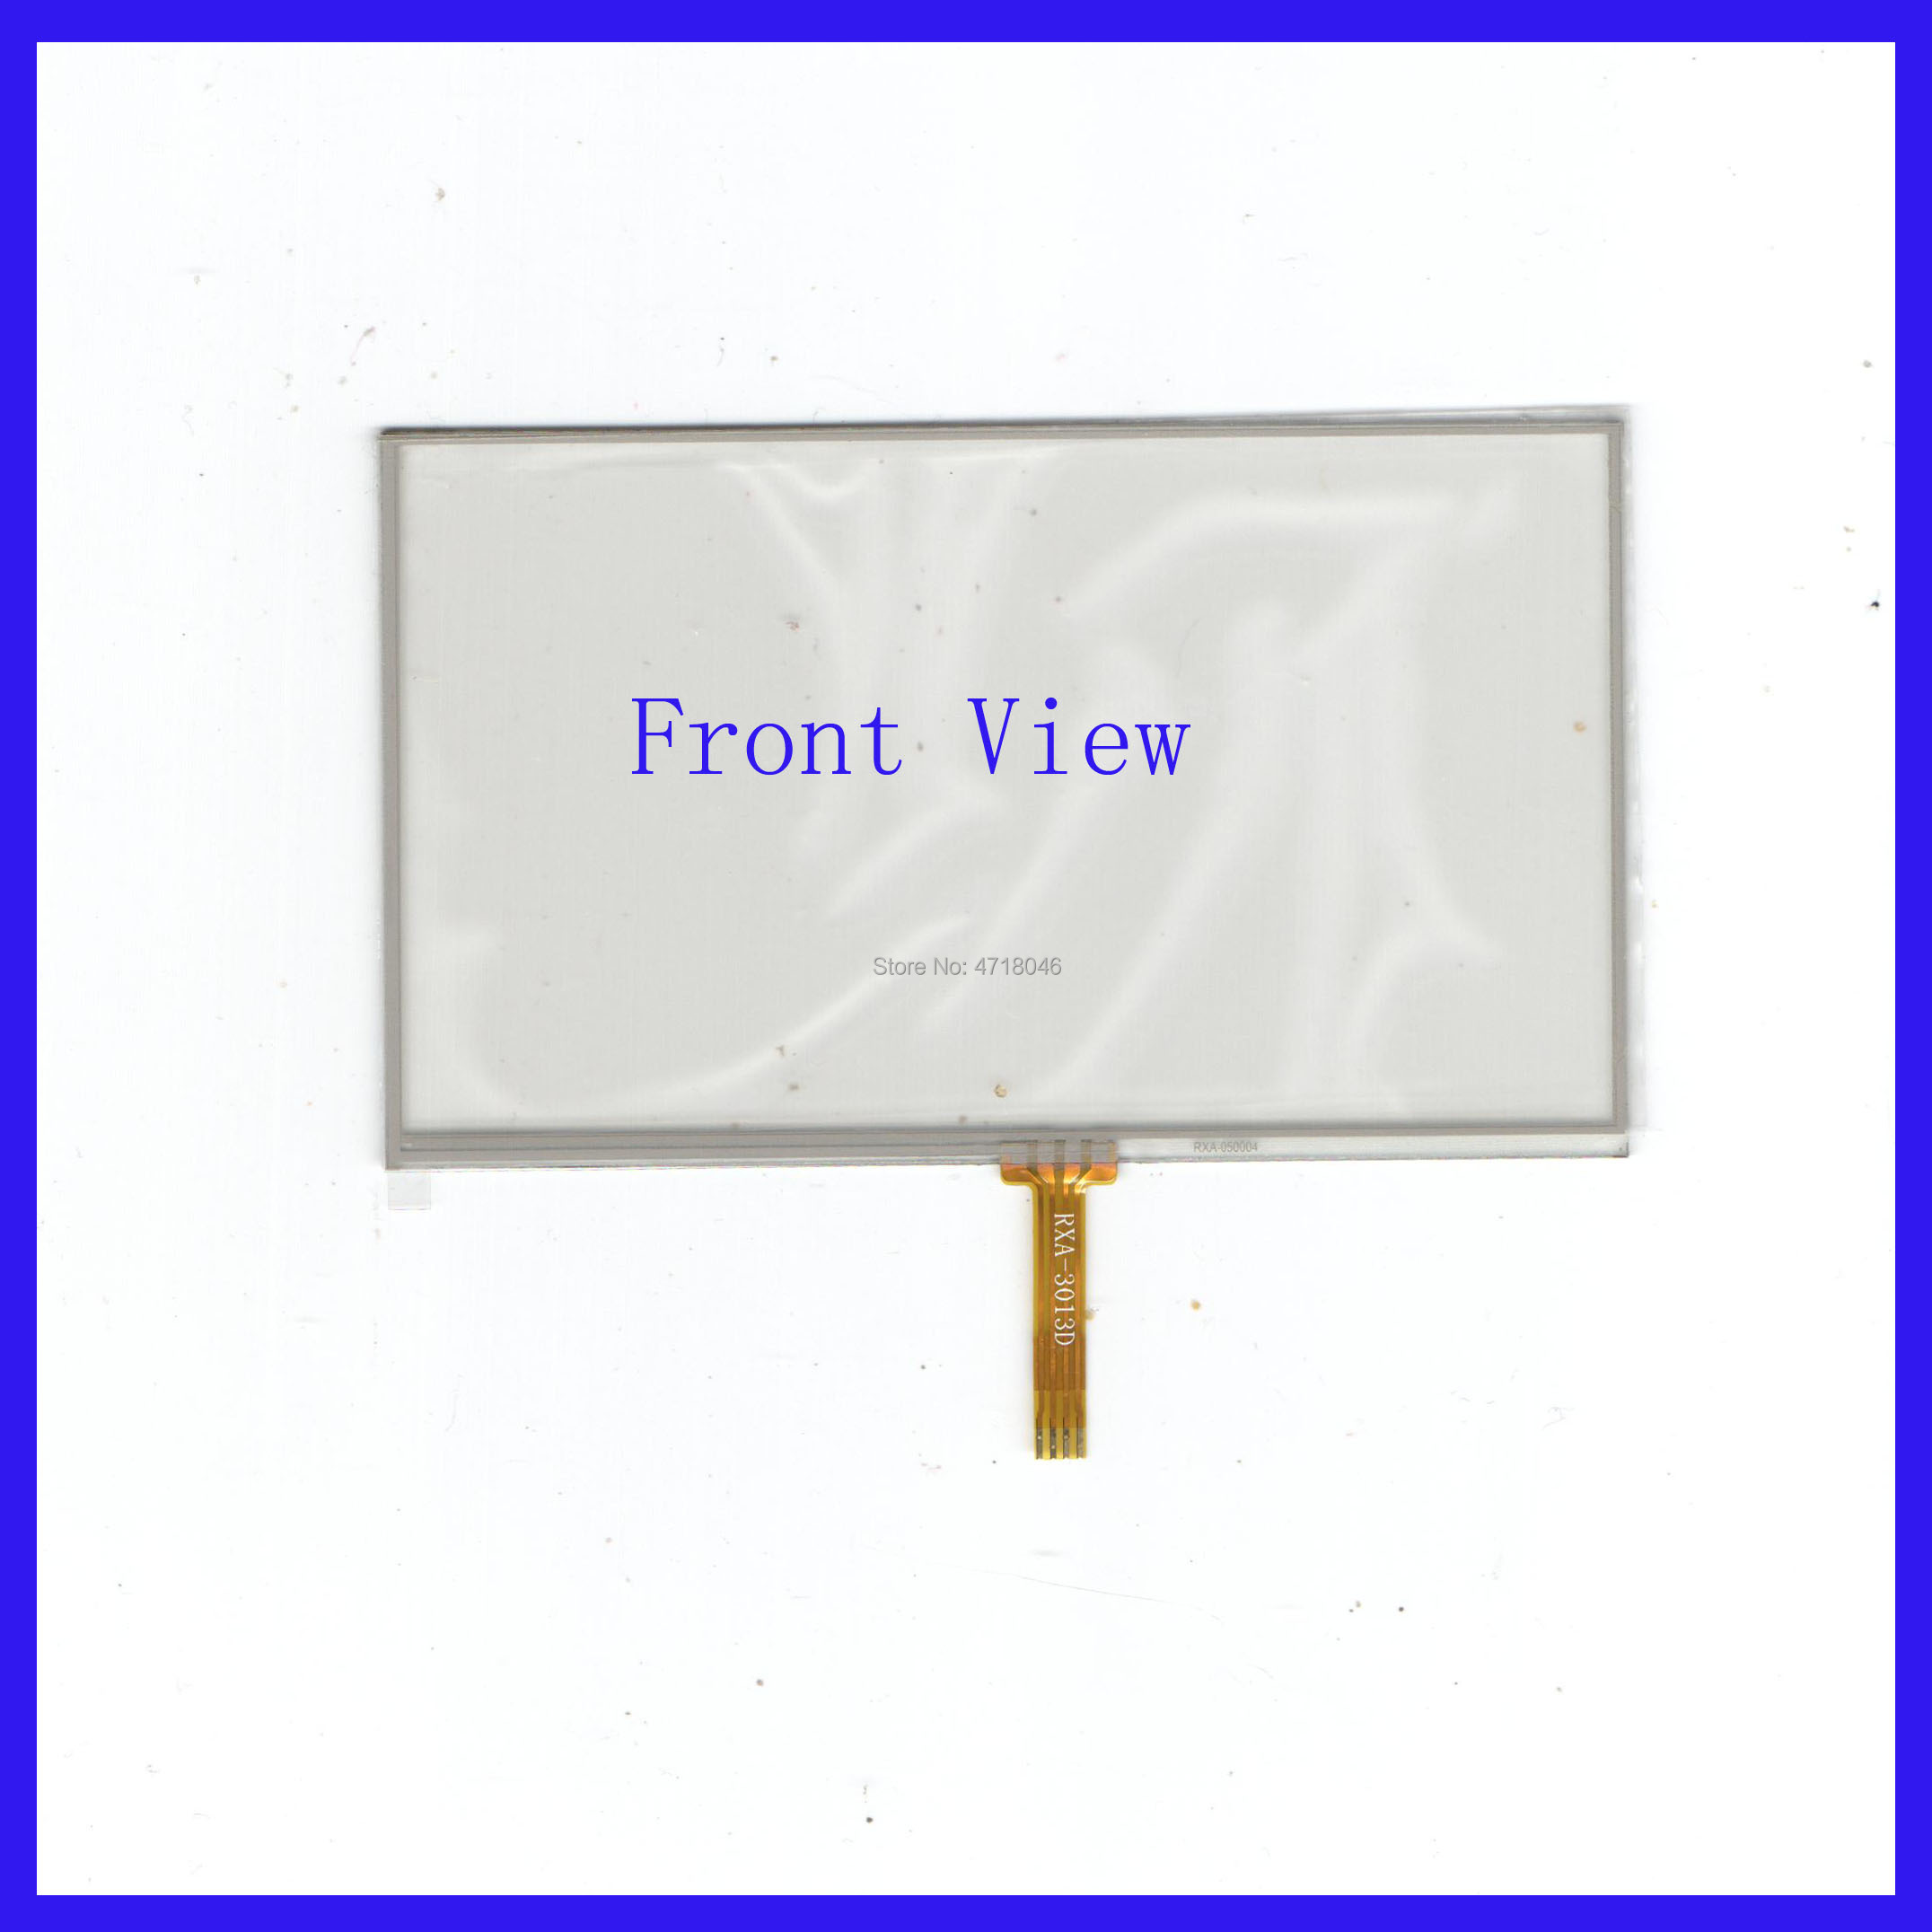 ZYS forPrestigio forgeovision <font><b>5055</b></font> compatible touchglass 4lines resistance screen this is compatible Touchsensor image